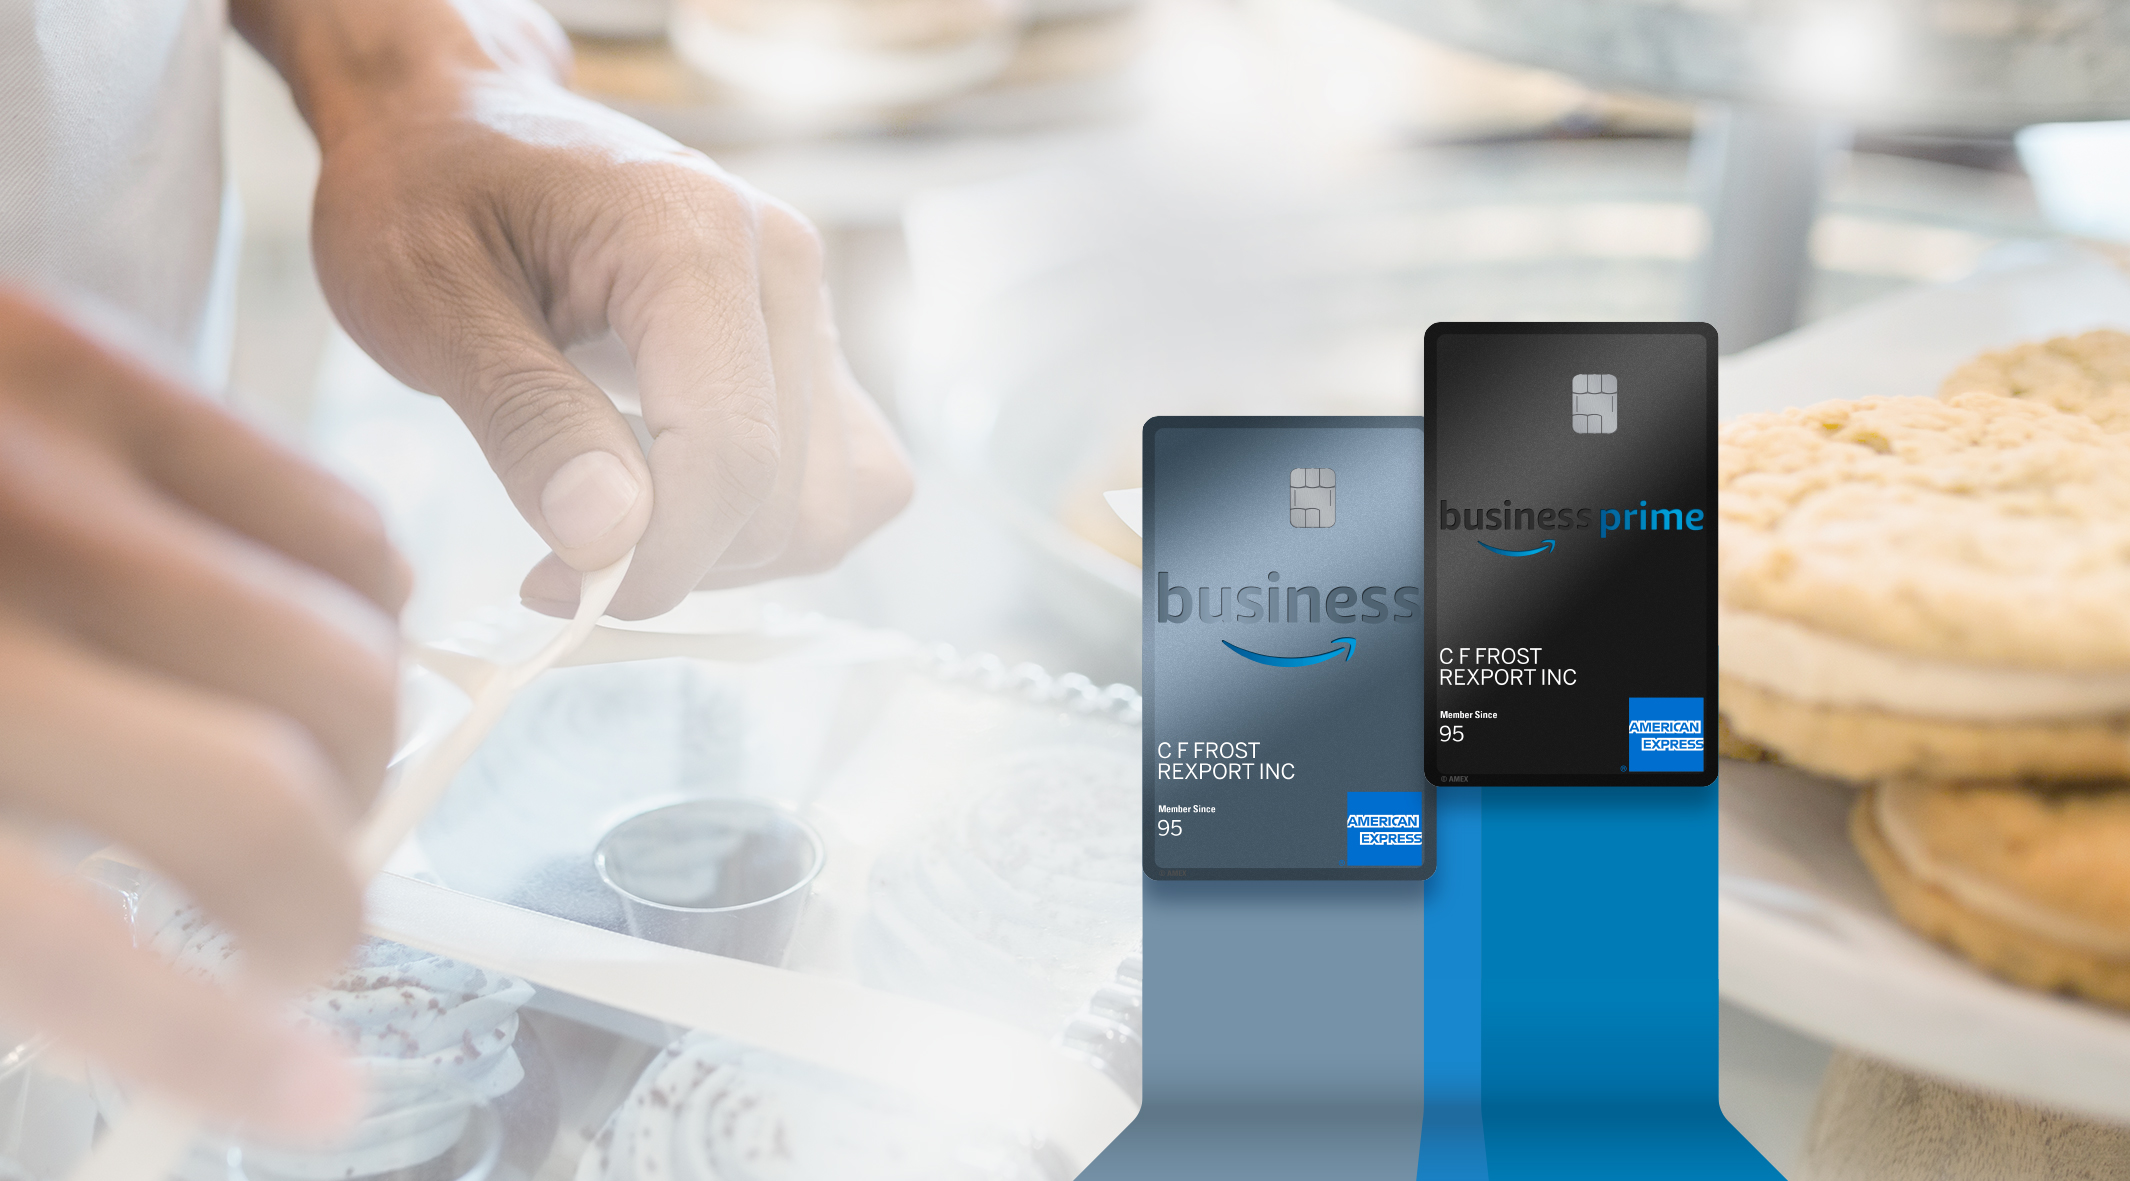 American Express Karte.Amazon Com Amazon Business American Express Card Credit Card Offers